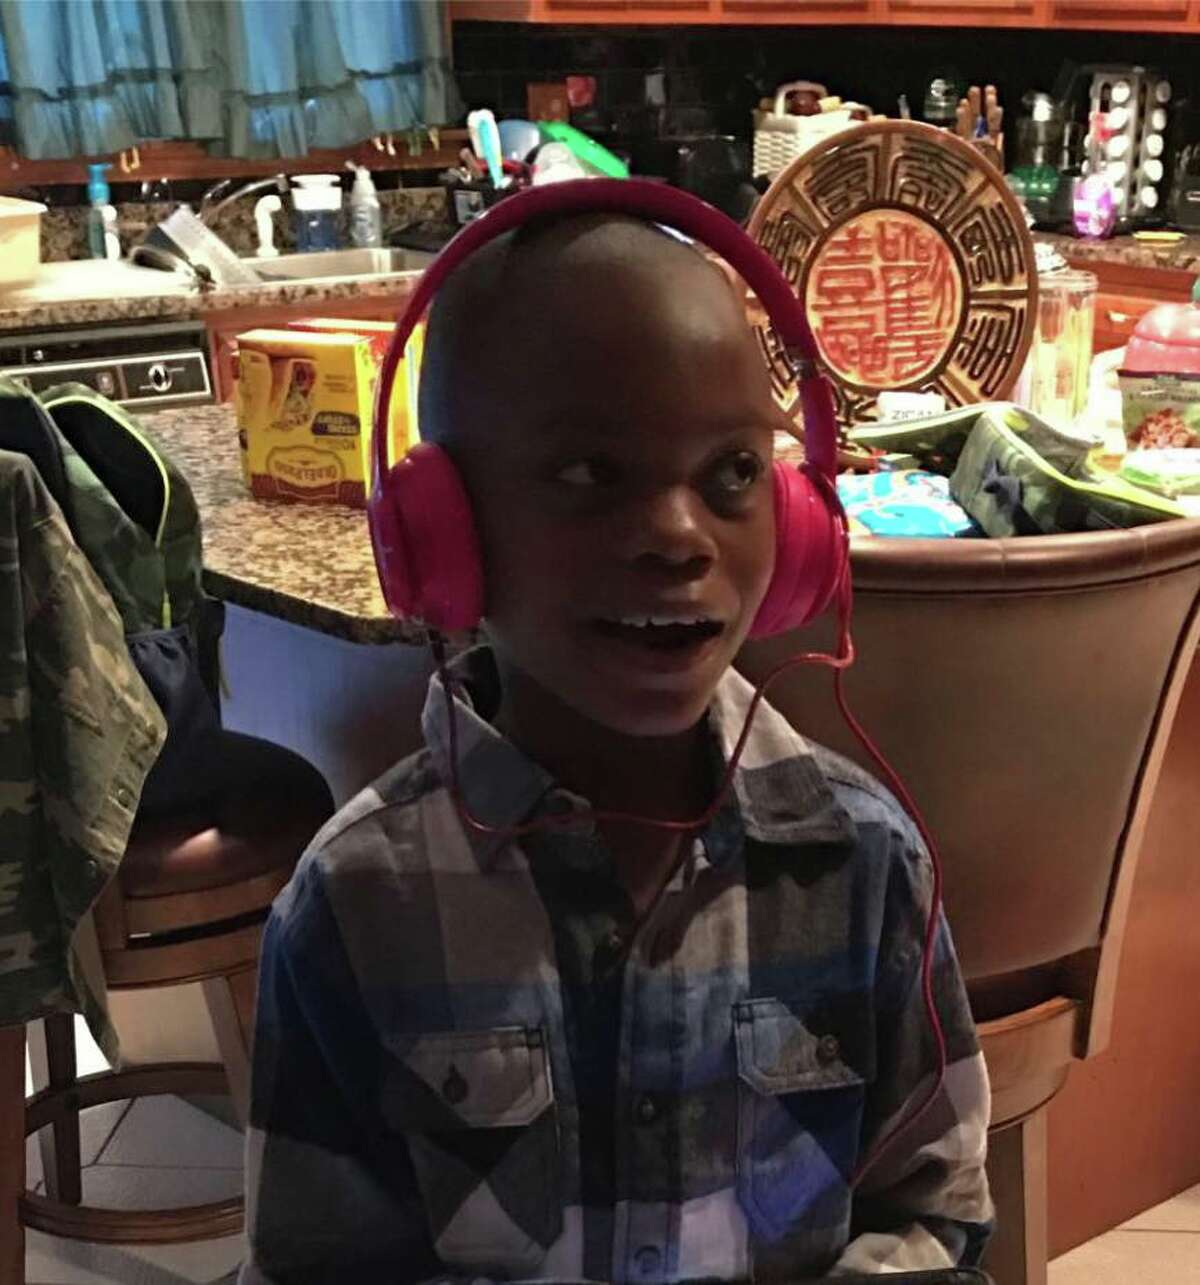 Pearland Police are searching for 9-year-old Marcus MgGhee who went missing Thursday, Nov. 24, from a Pearland home.